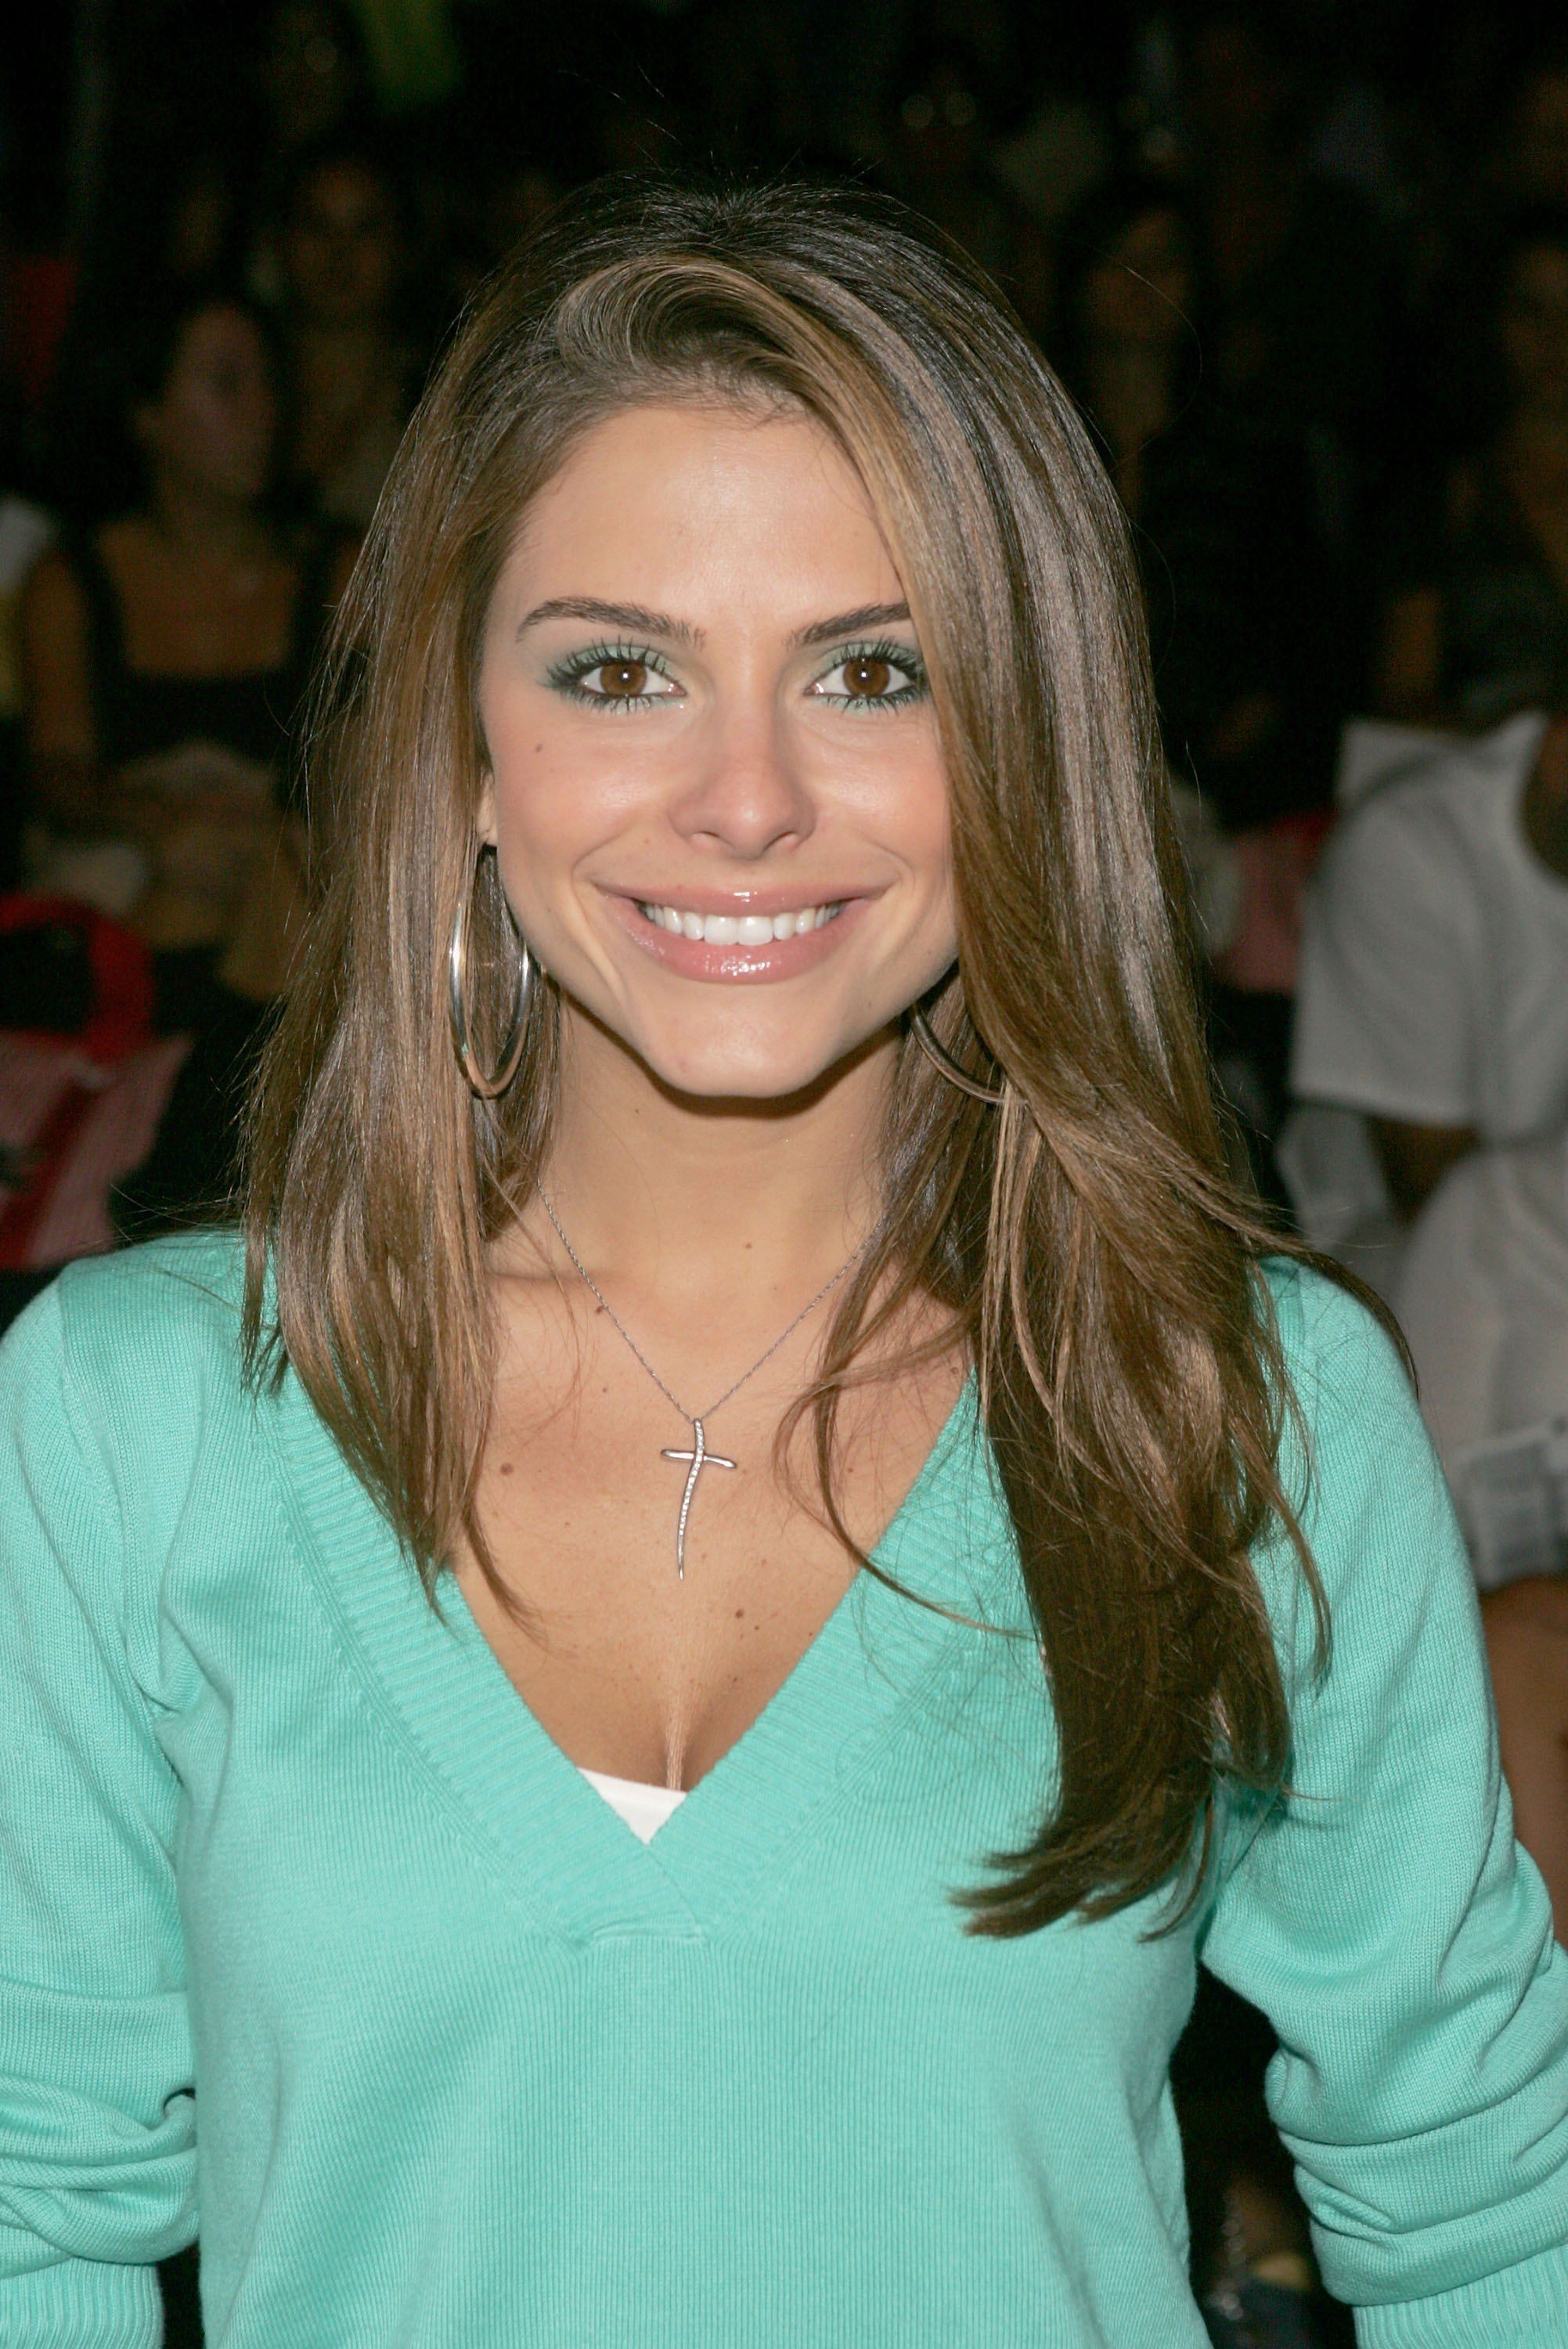 Female Celebrities With Light Brown Hair for green eyes makeup maria menounos   looks - makeup - green eyes